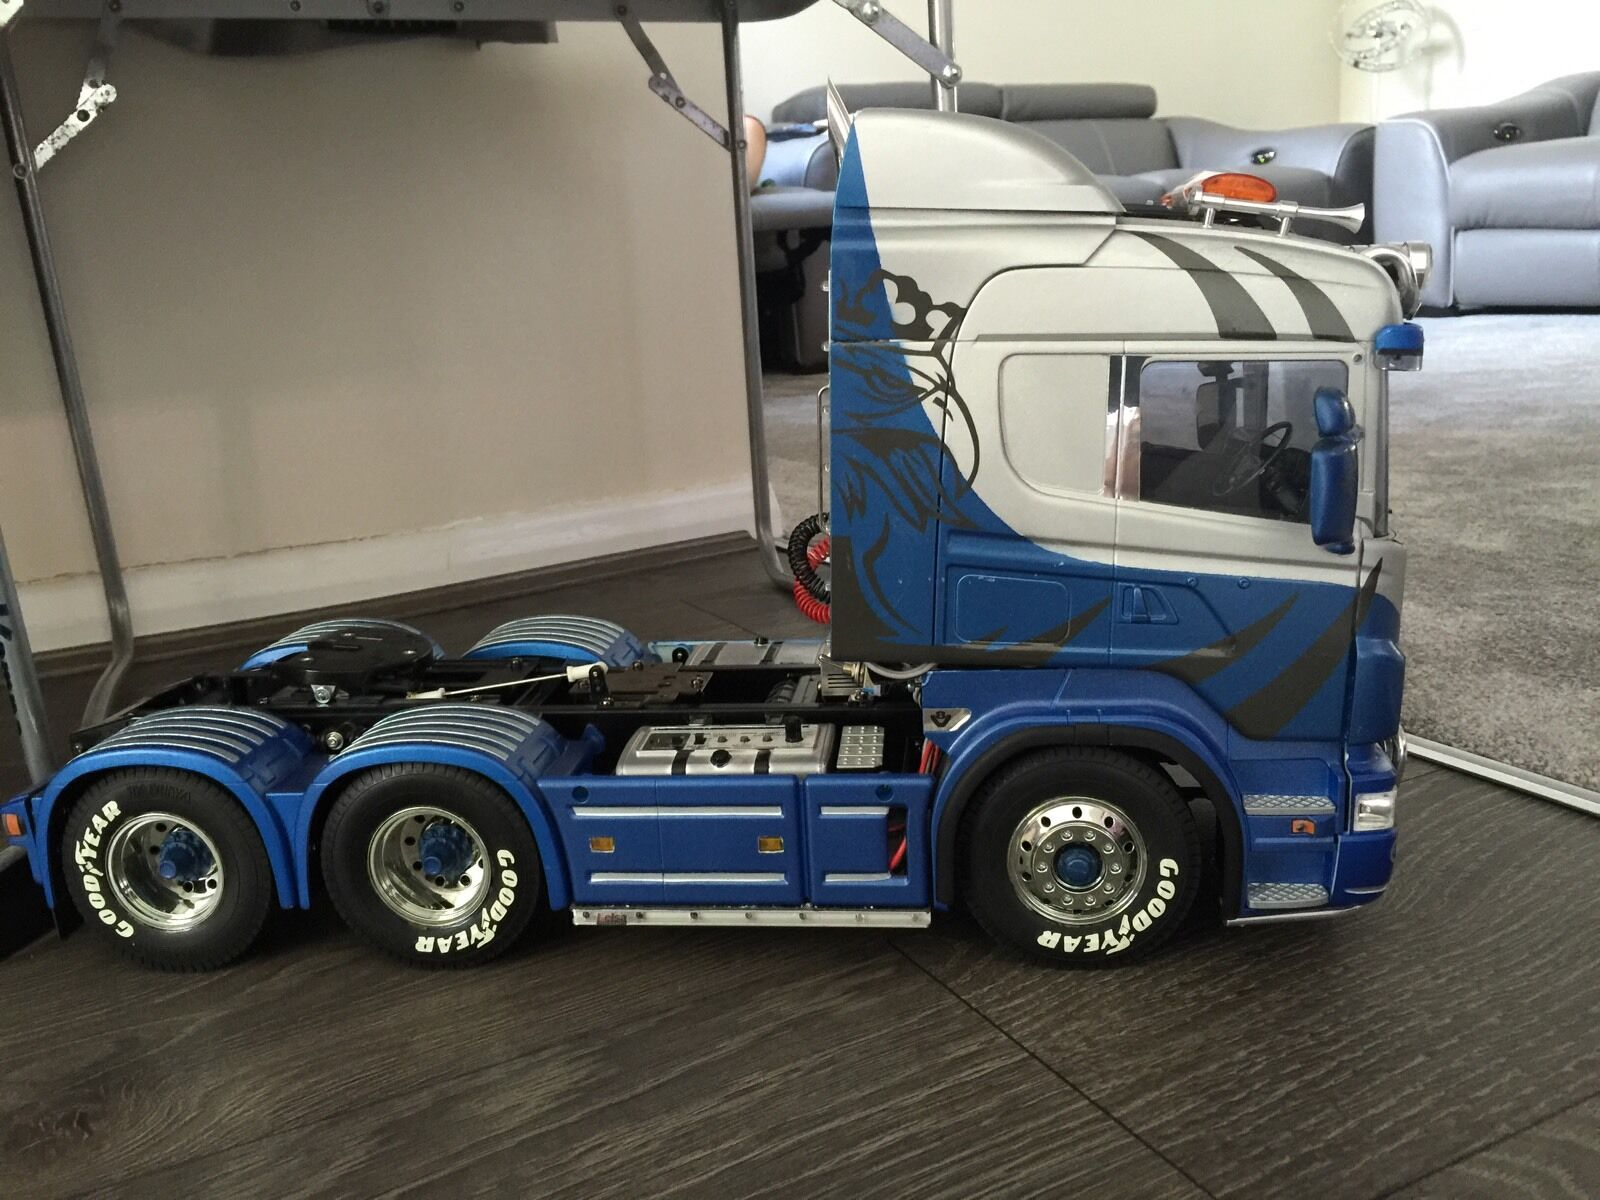 rc trucks ireland with Tamiya Scania 1 14 Truck Griffin Cab Decals Any 182398679736 on Cute 20baby 20cats also Watch additionally Tamiya Scania 1 14 Truck Griffin Cab Decals Any 182398679736 likewise Rule 5 in addition New Rovan RC 1 5 305FT 305cc Gas Truck 252466679487.